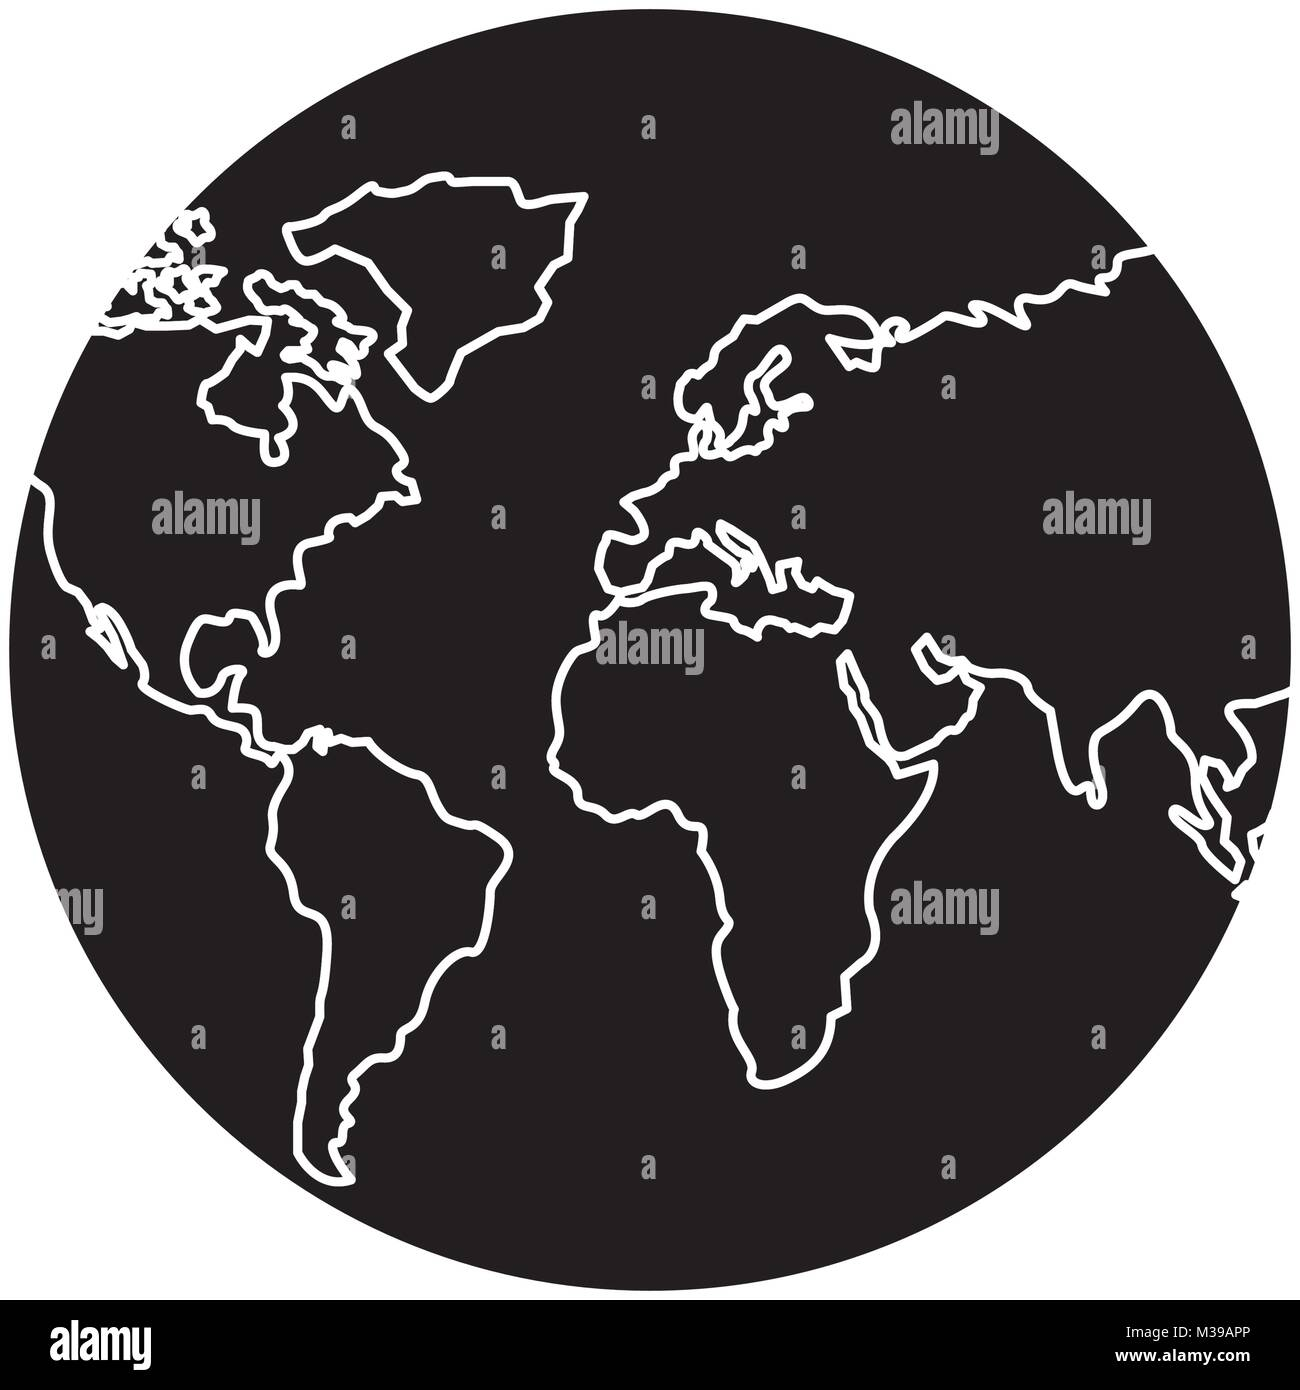 Earth planet world globe map icon stock vector art illustration earth planet world globe map icon gumiabroncs Images